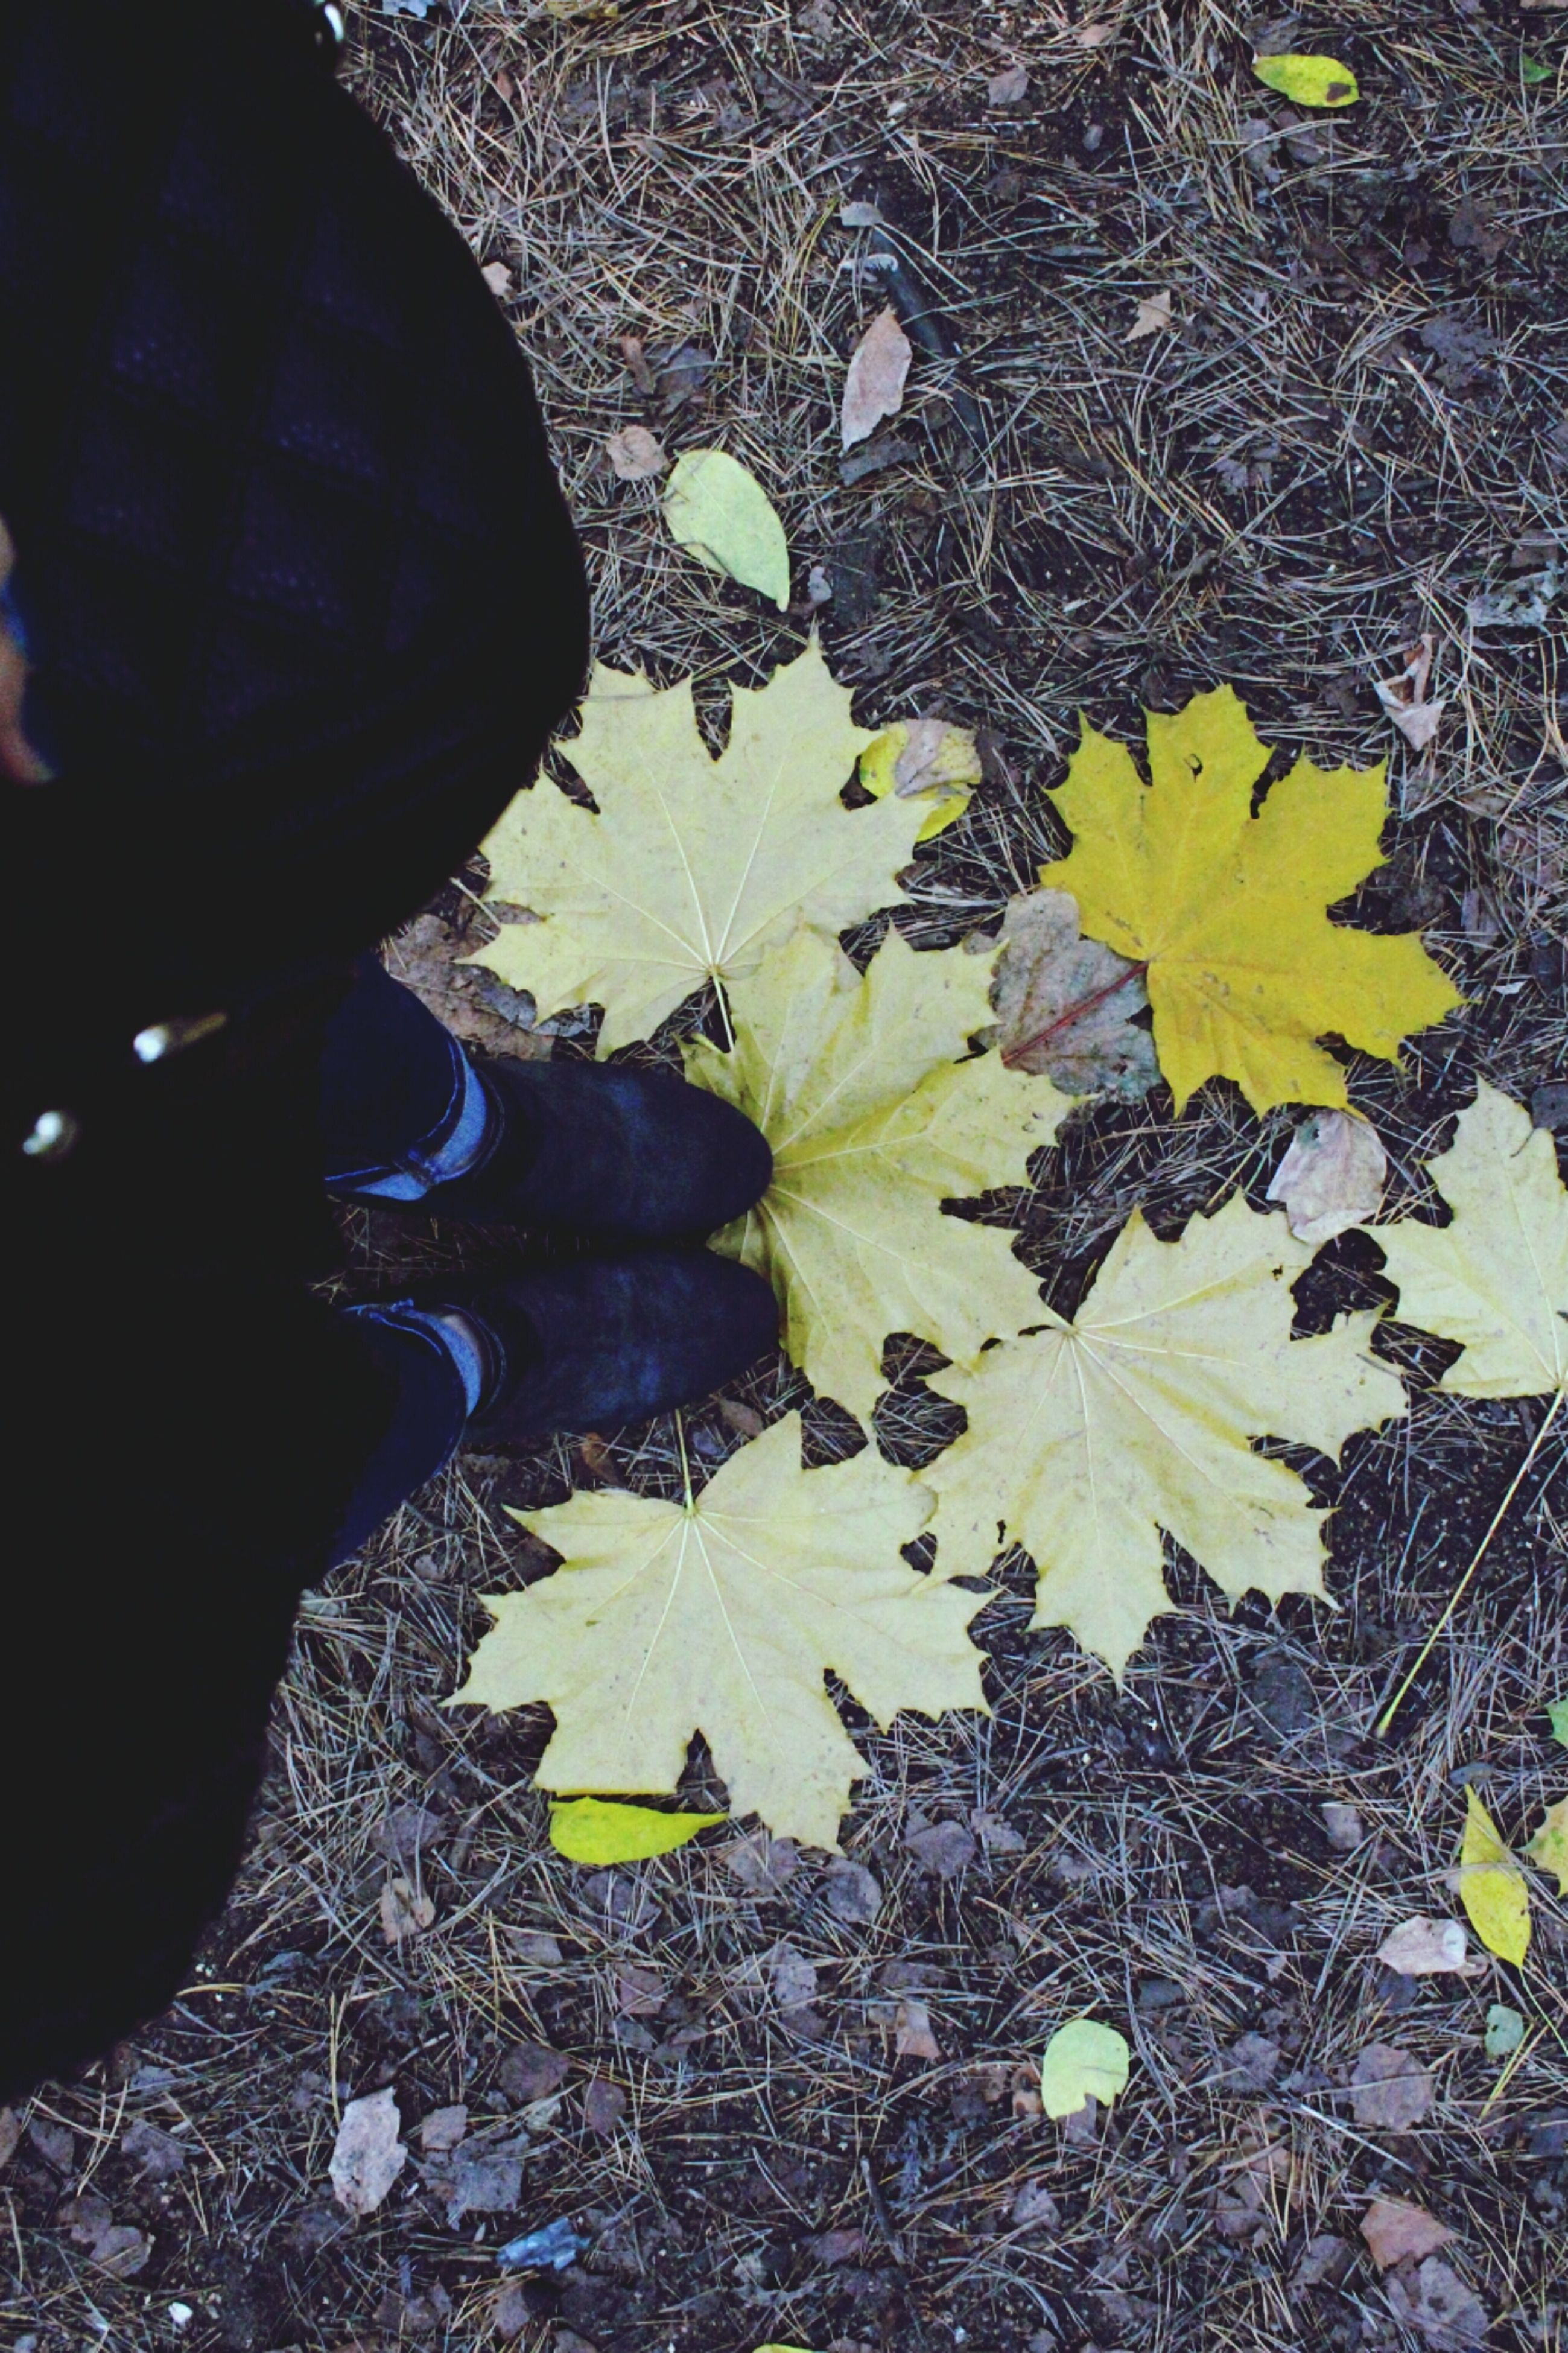 leaf, autumn, leaves, change, high angle view, dry, fallen, low section, season, shoe, nature, person, falling, ground, outdoors, day, yellow